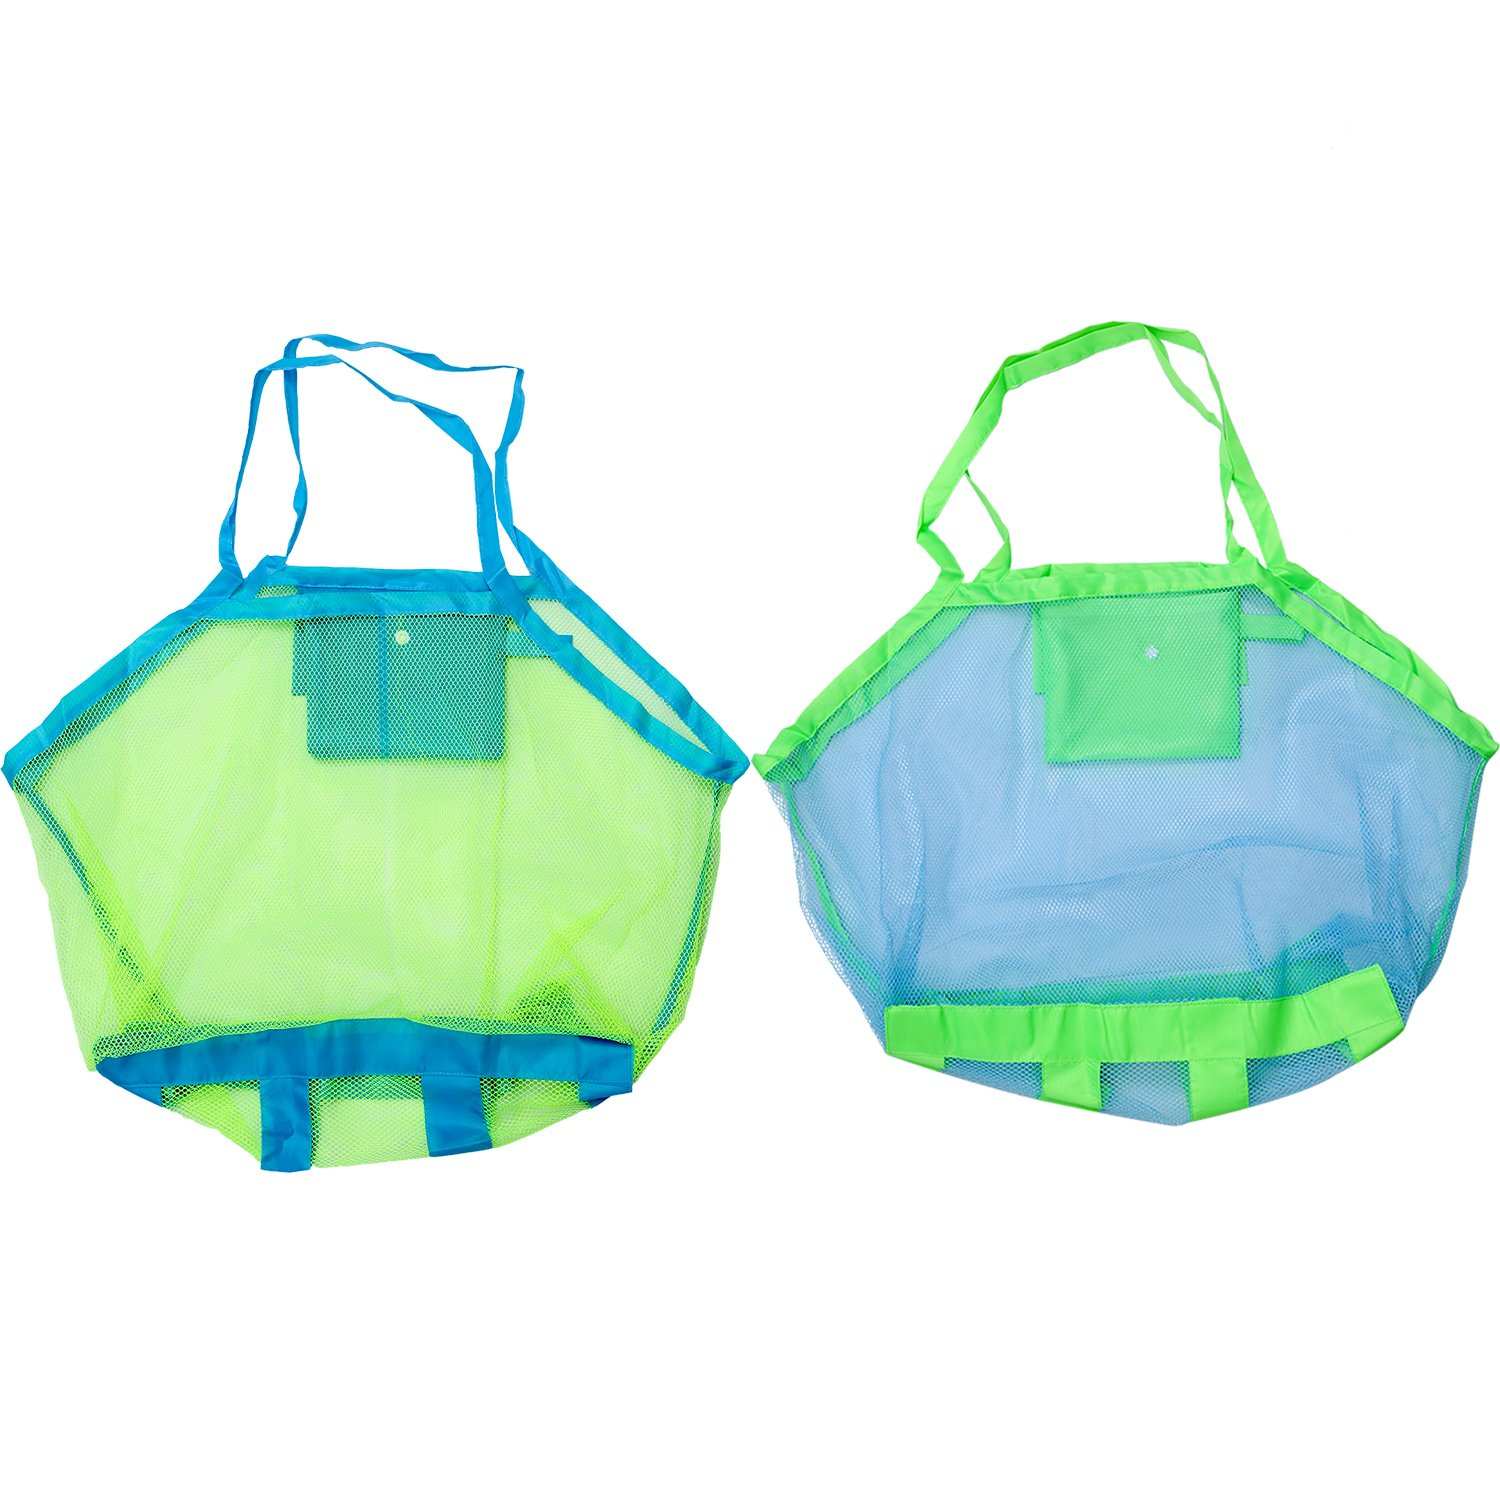 Boao 2 Colors Large Mesh Beach Toy Bags Foldable Toy Storage Bag for Kids Toys